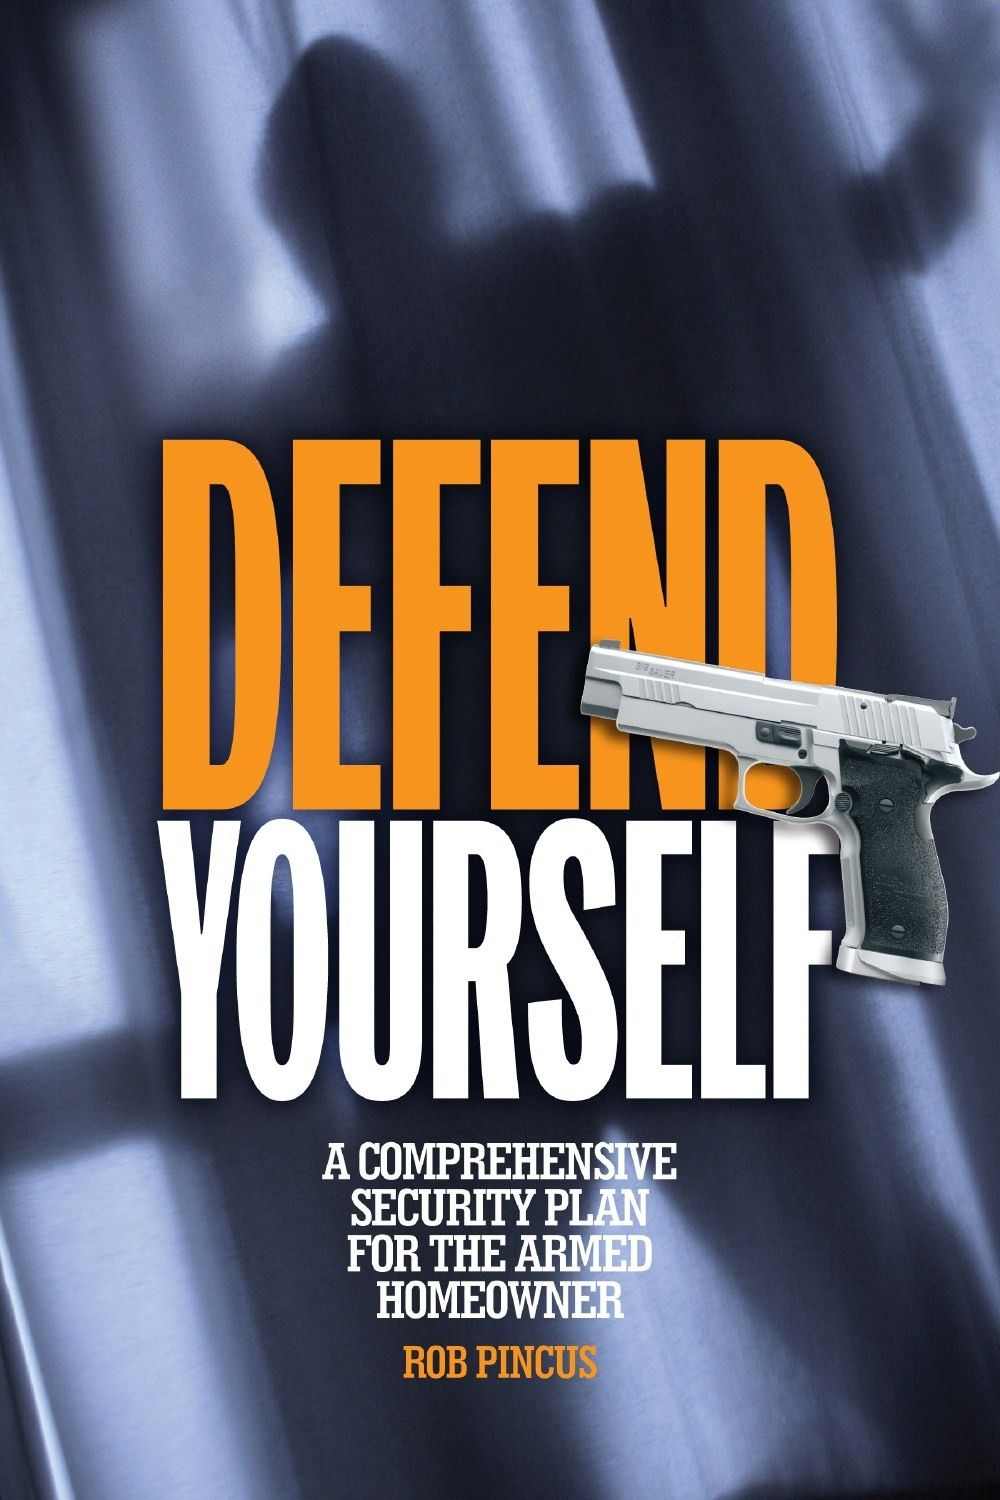 Defend Yourself A Comprehensive Security Plan for the